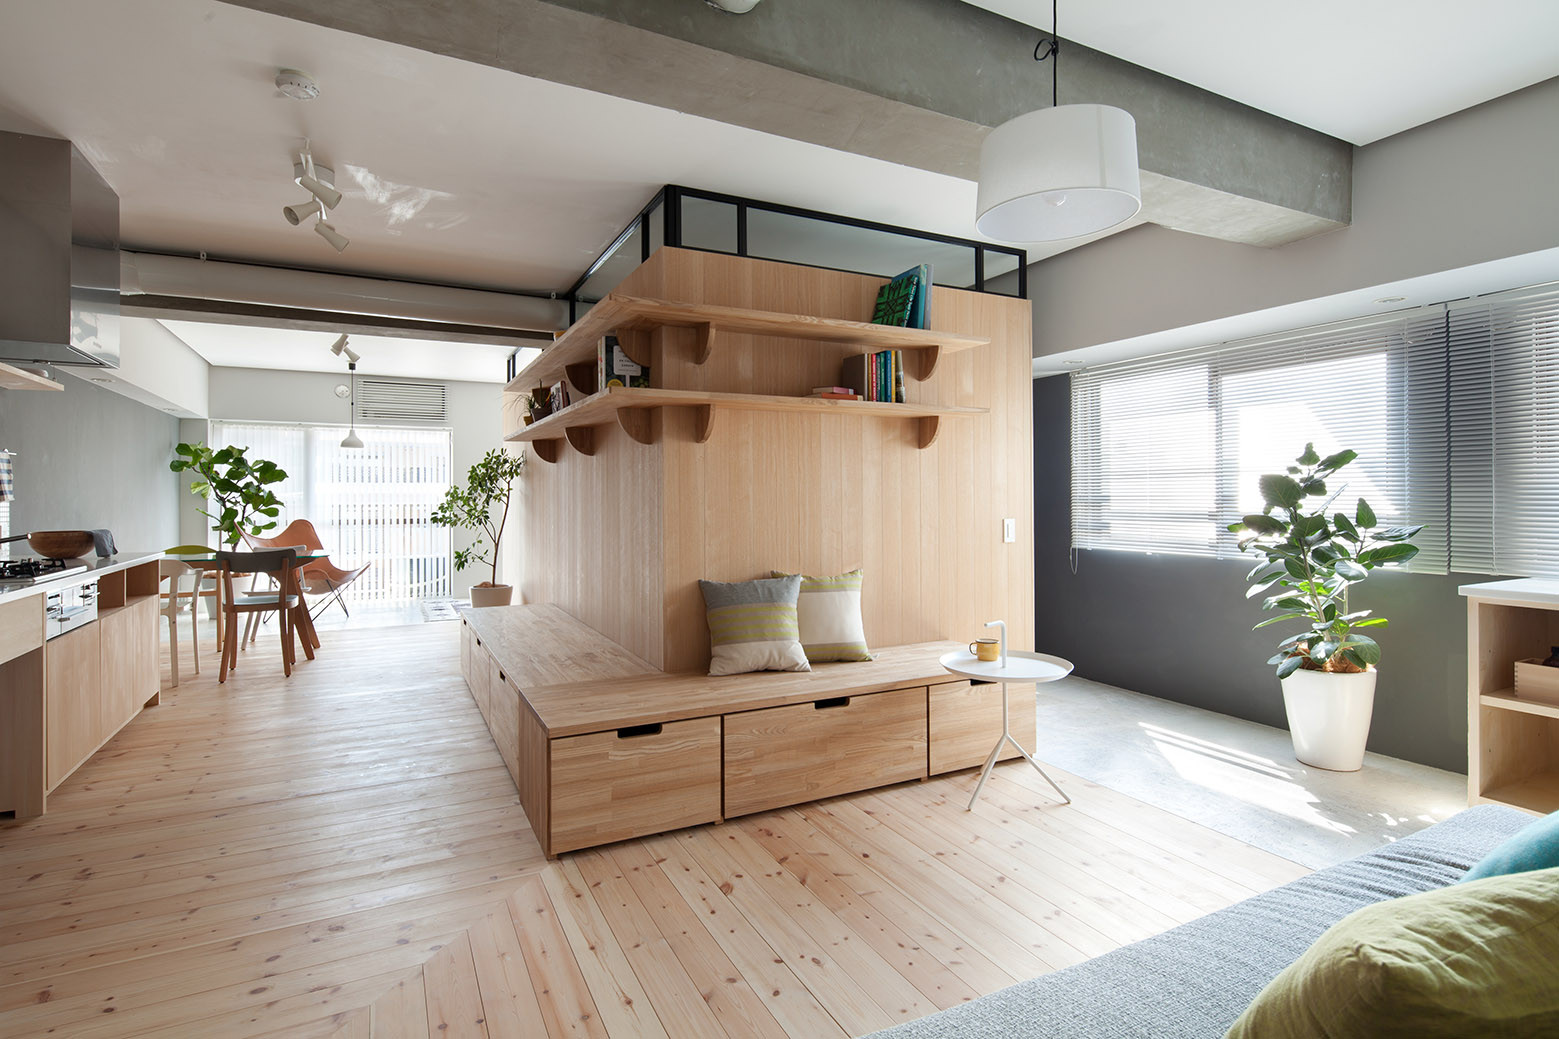 Fujigaoka m sinato archdaily - Solutions for small spaces plan ...